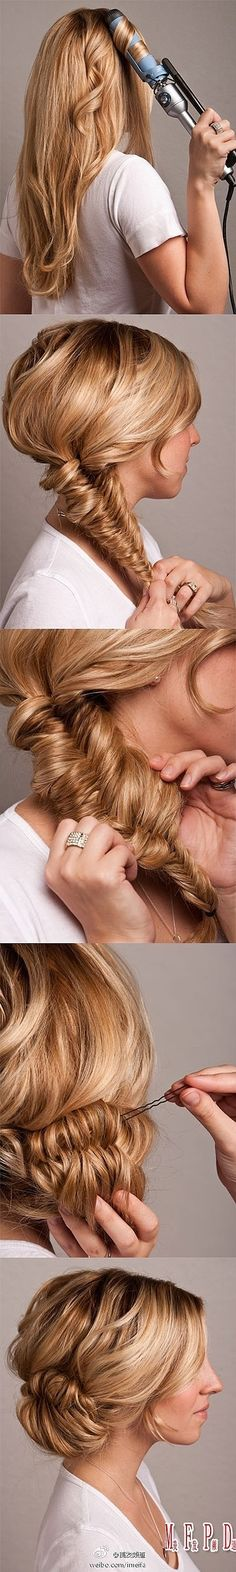 Using a fishtail braid to add volume and texture to a low side bun. Very pretty.